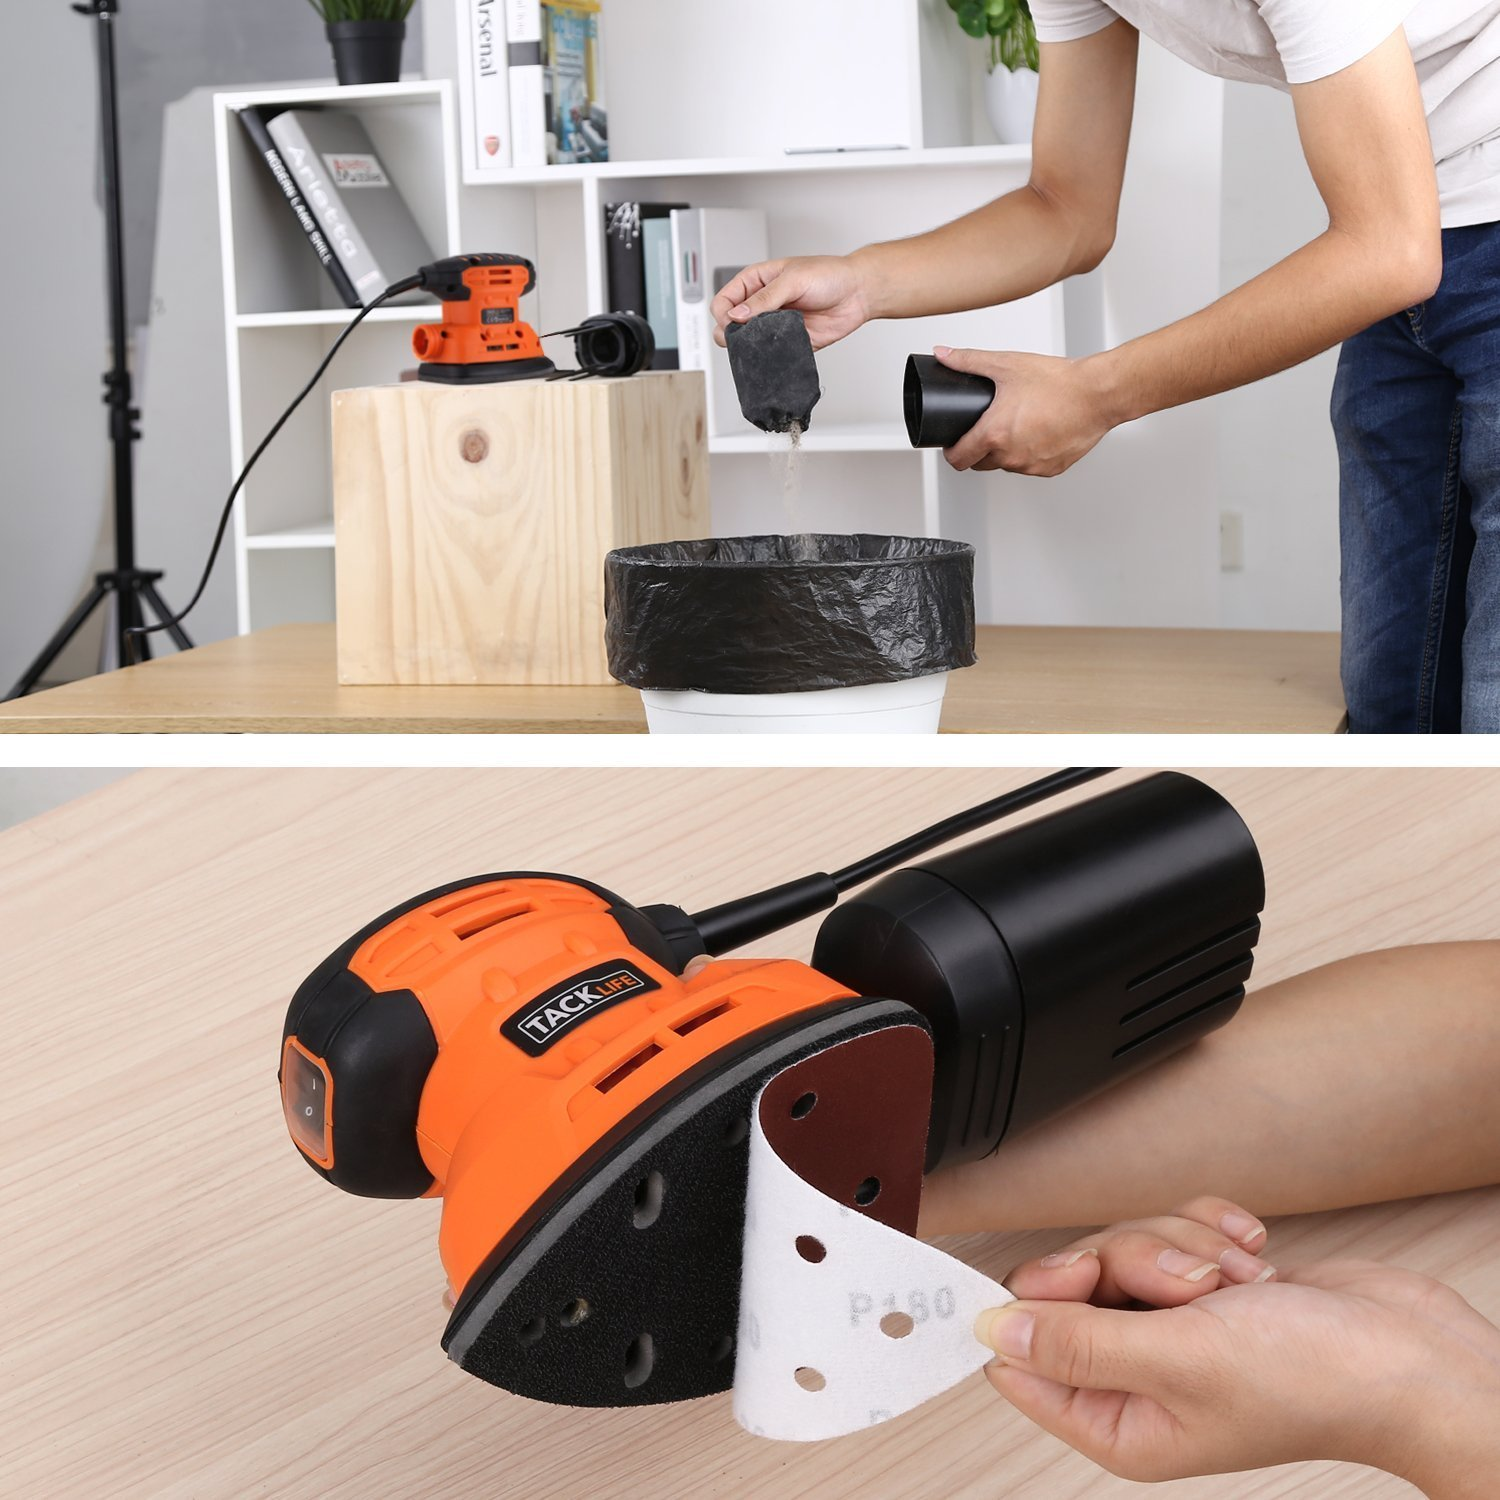 Mouse Detail Sander with 12Pcs Sanderpaper, 12000 OPM Sander with Dust Collection System For Tight Spaces Sanding in Home Decoration, DIY by TACKLIFE (Image #4)